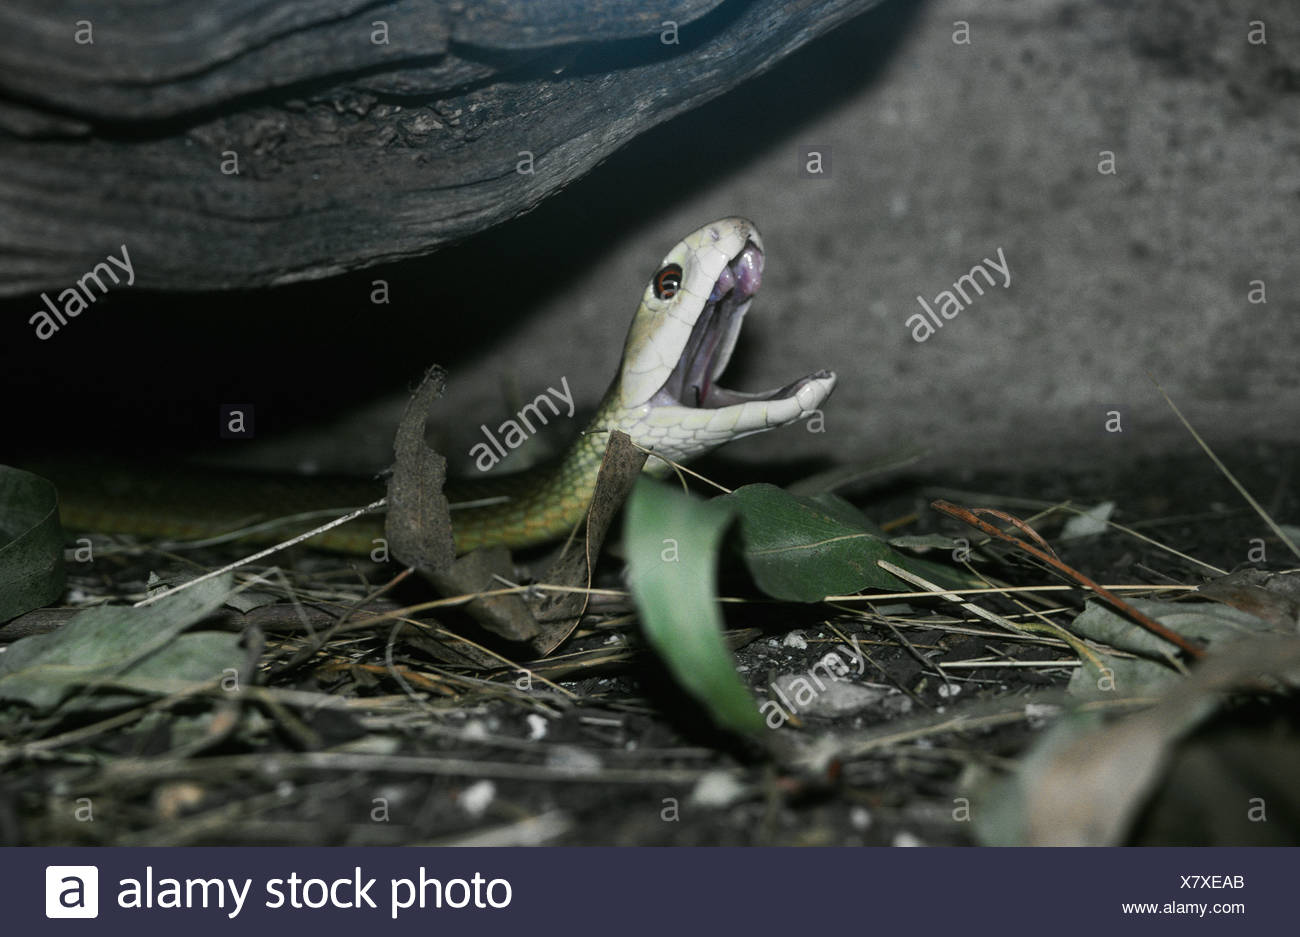 A deadly Inland Taipan rises off the ground as it strikes at prey. - Stock Image